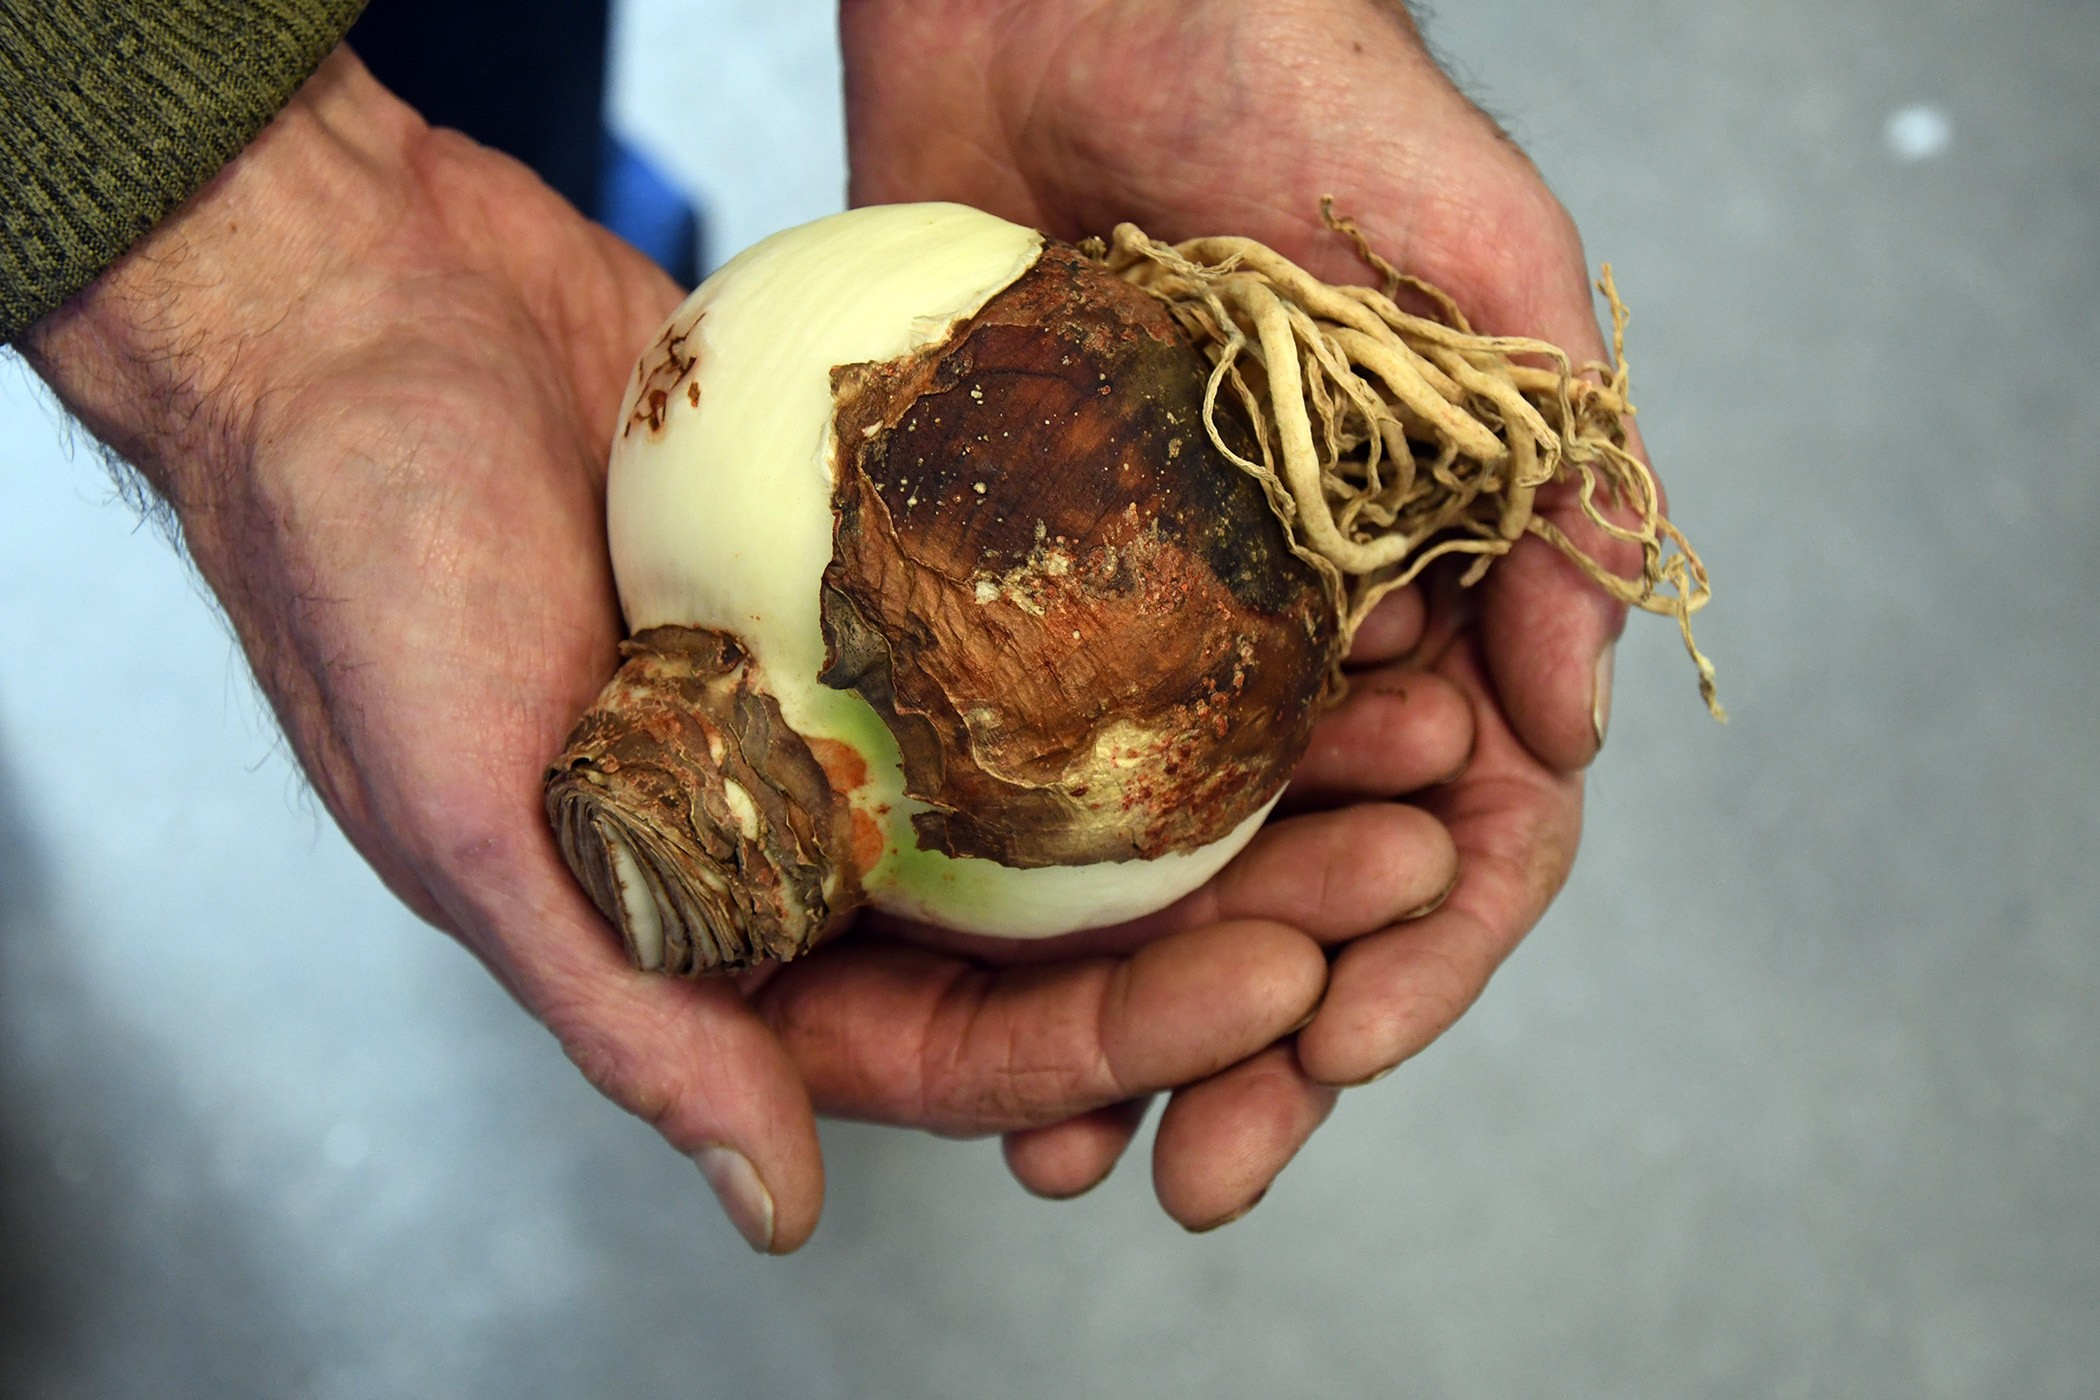 man's hands cupped holding amaryllis bulb